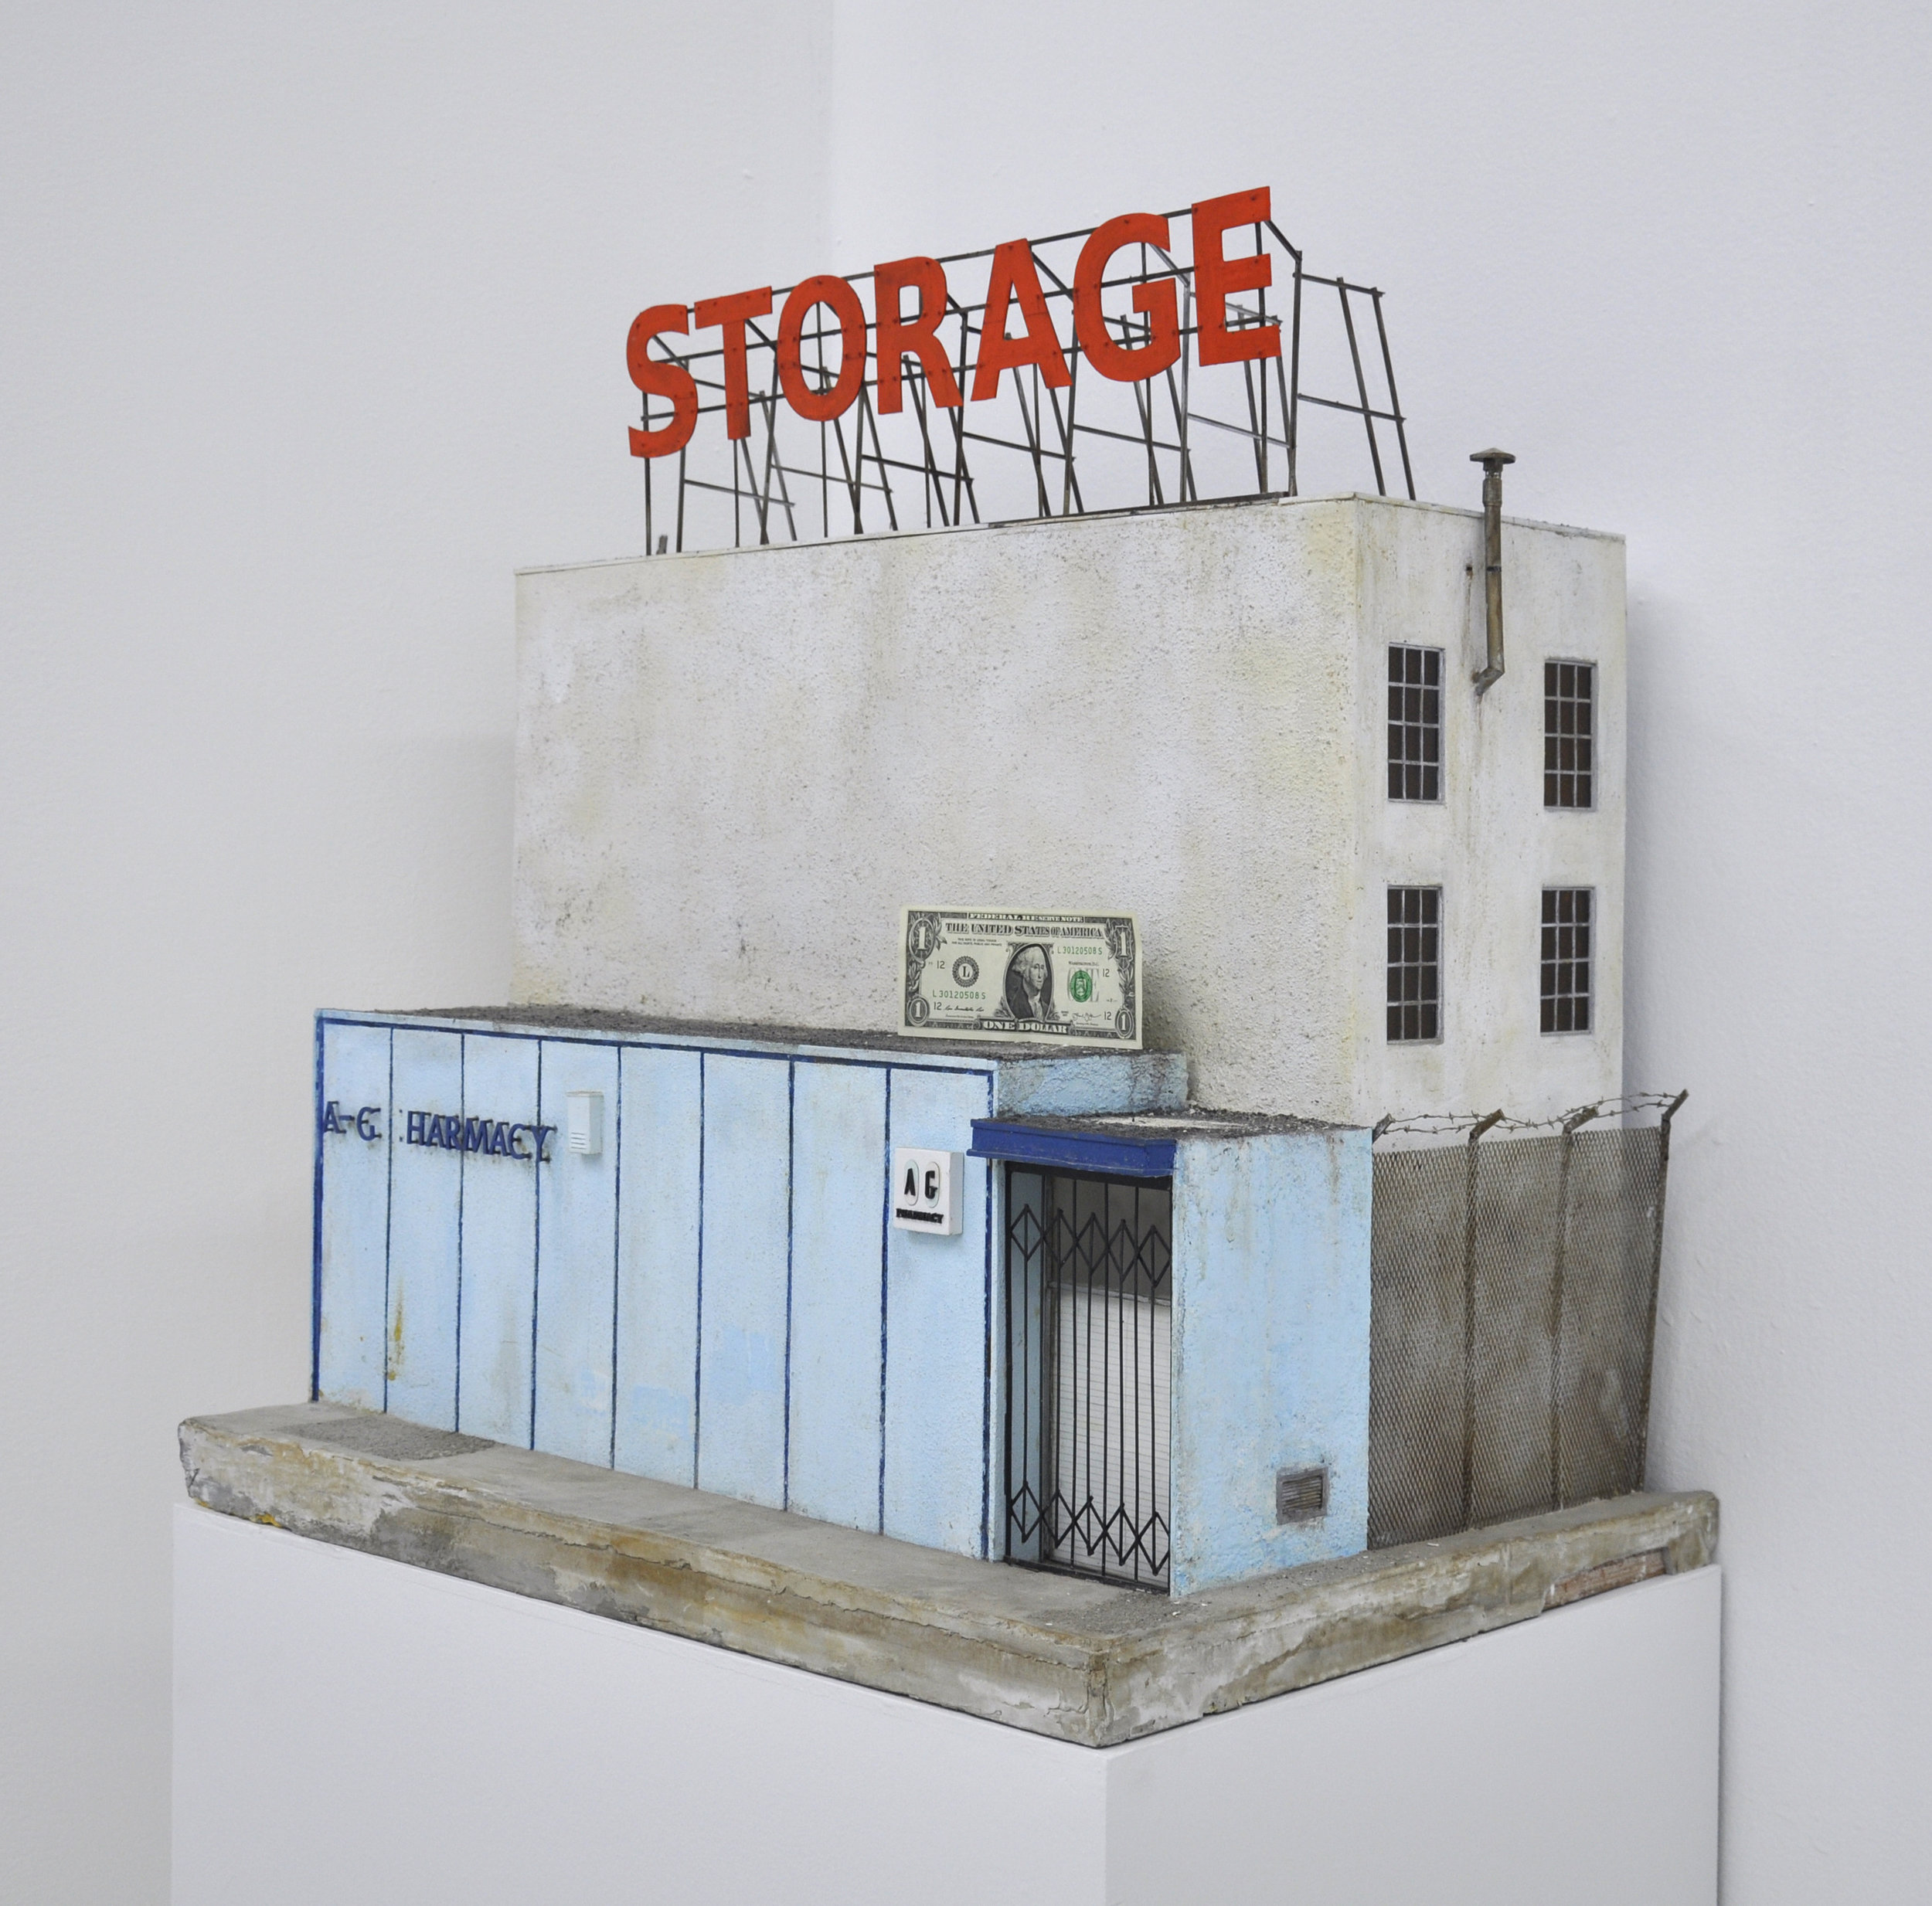 Malcolm Kenter, AG Pharmacy / Storage, 2017, Enamel and Latex on Wood, Cement, Metal, Glass, Plastic, Sand, 27.5 x 18.5 x 27in